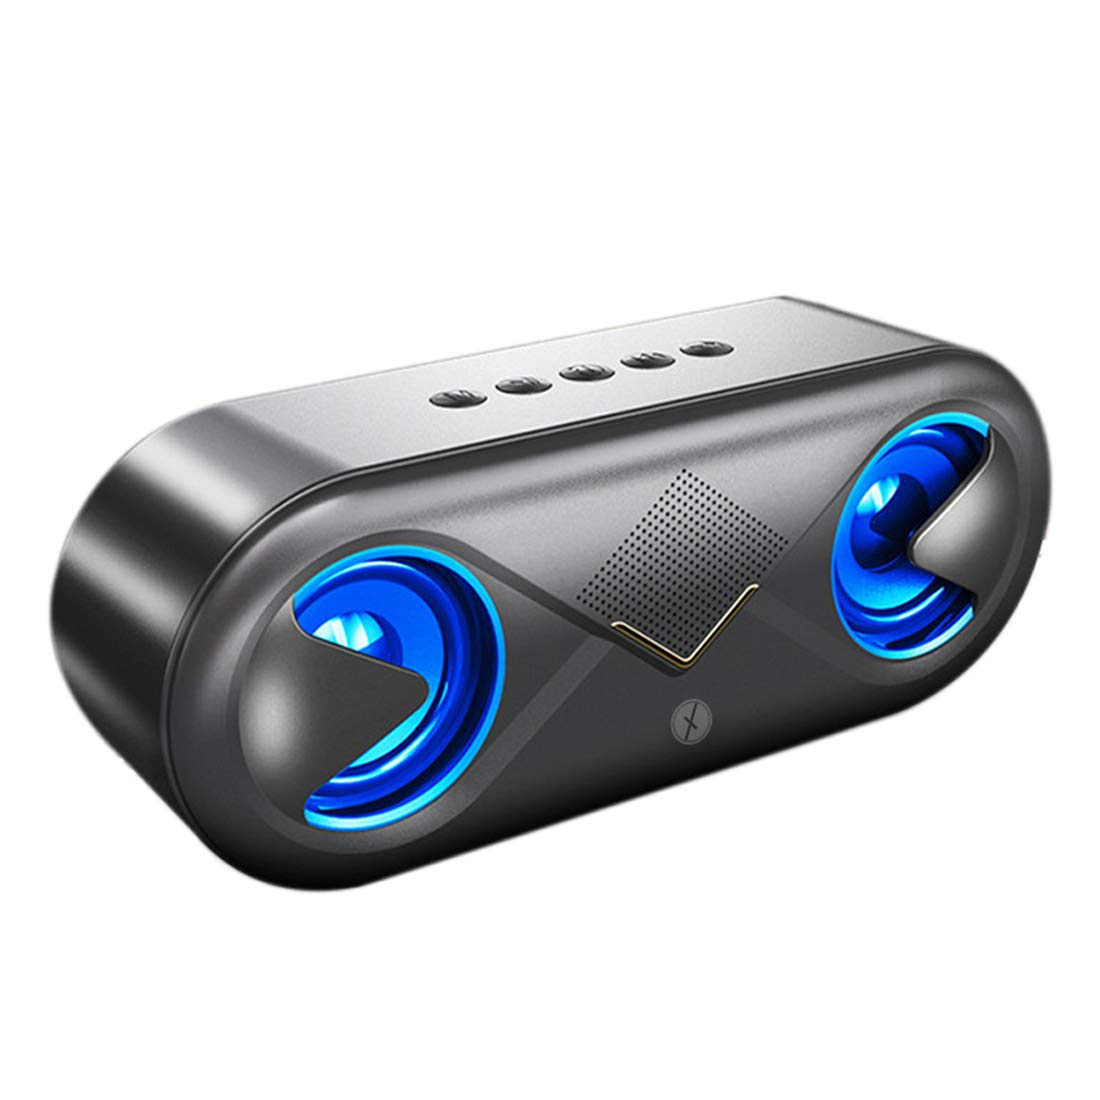 Xmate Volt Bluetooth Speaker with 10W Speakers, Portable Wireless Speakers with Bluetooth 5.0, Subwoofer, Up to 10 Hours of Music Playtime, Aux/TF Card/USB Support for All Smartphones (Black)